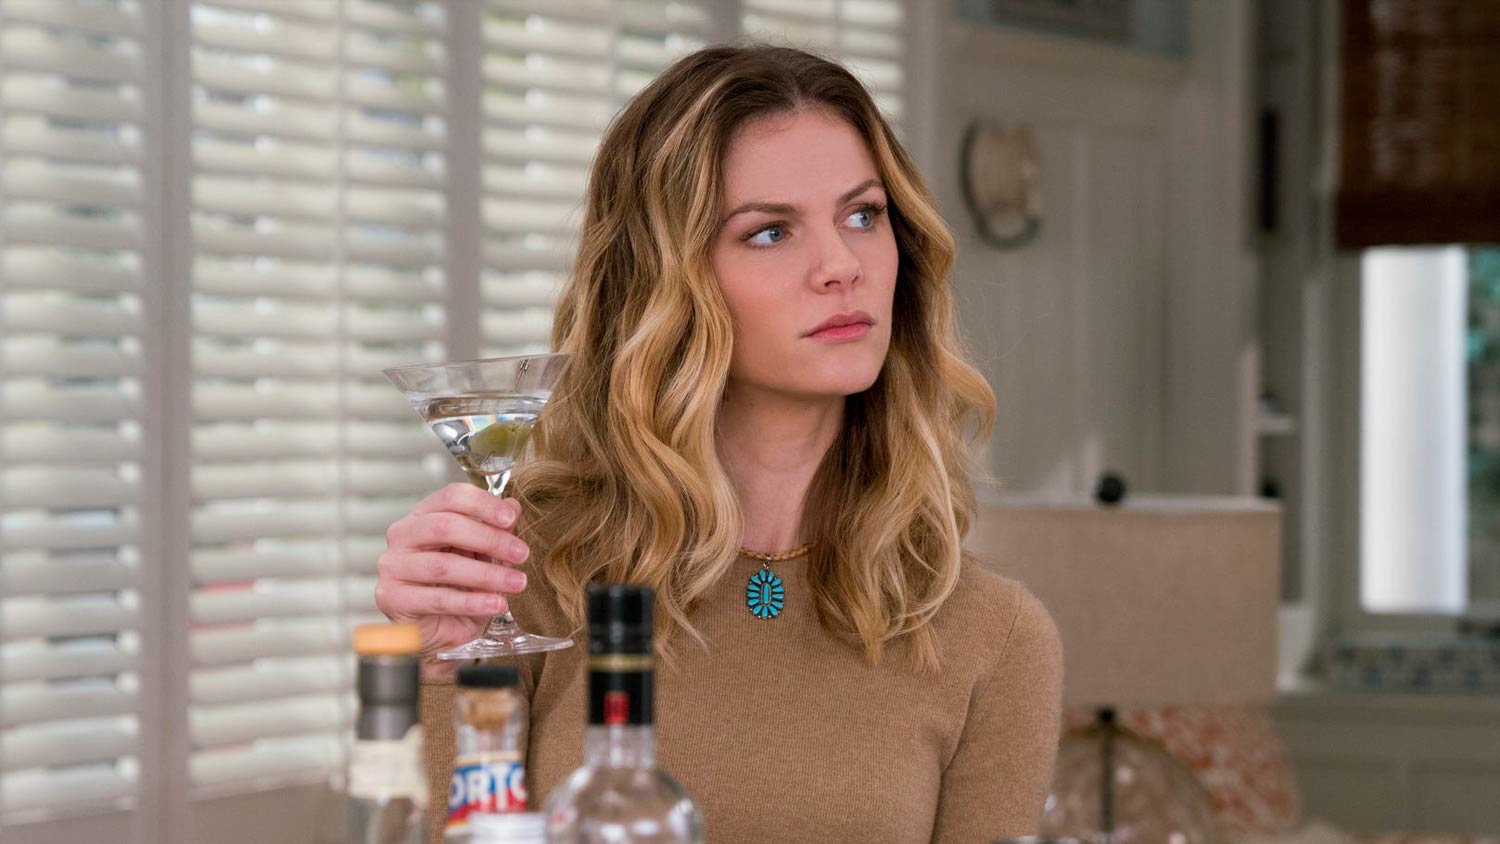 Brooklyn Decker Gains Her Acting Chops with the Netflix Hit, Grace and Frankie - OC Movie Reviews - Movie Reviews, Movie News, Documentary Reviews, Short Films, Short Film Reviews, Trailers, Movie Trailers, Interviews, film reviews, film news, hollywood, indie films, documentaries